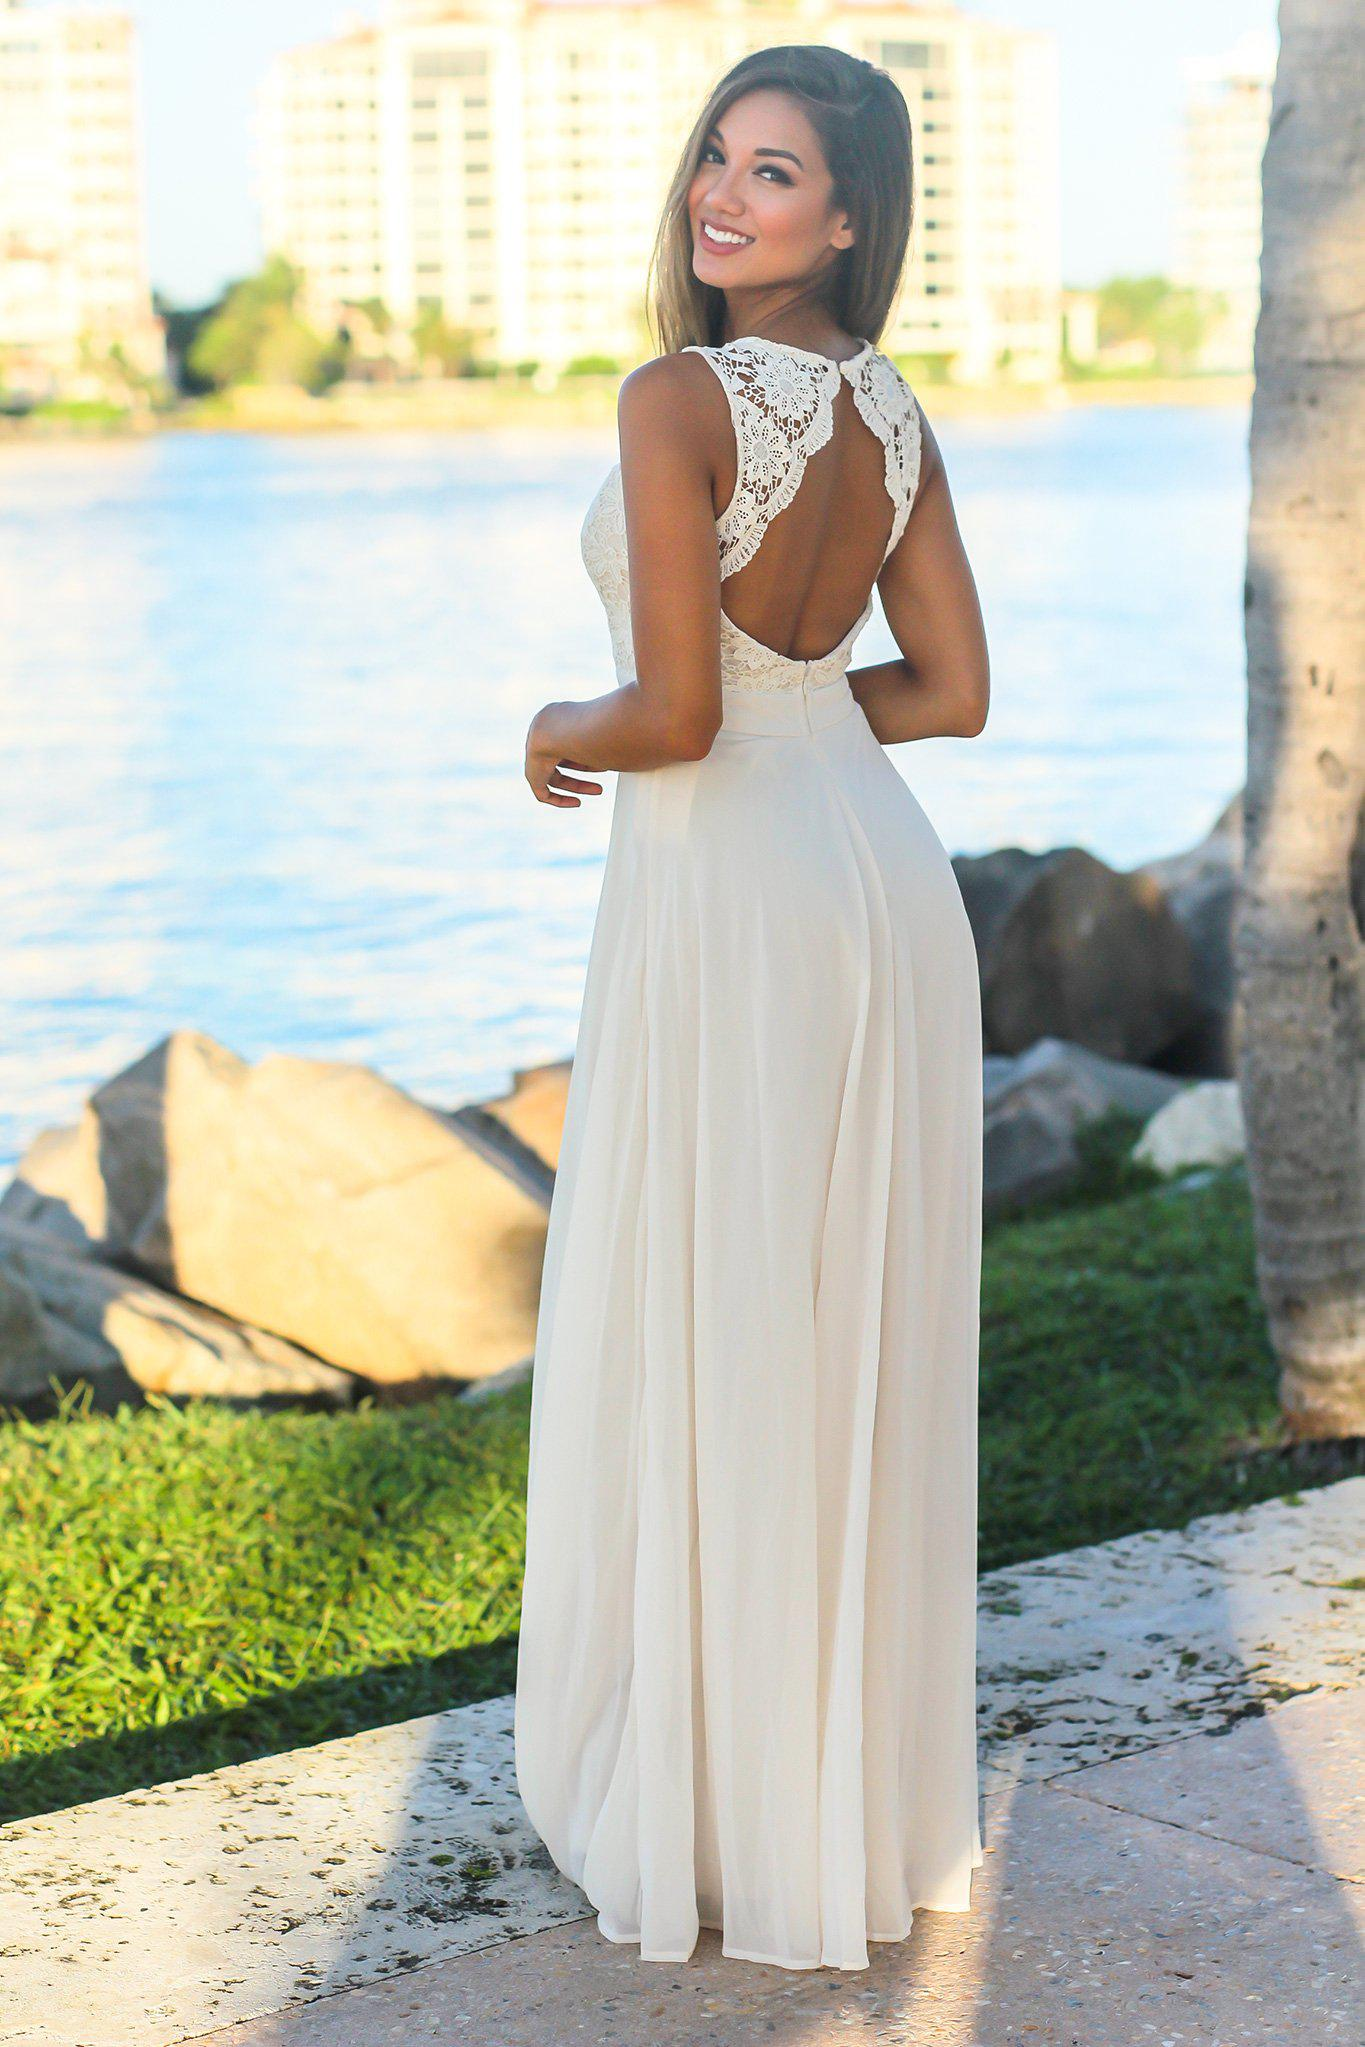 Beige Sleeveless Maxi Dress with Crochet Top